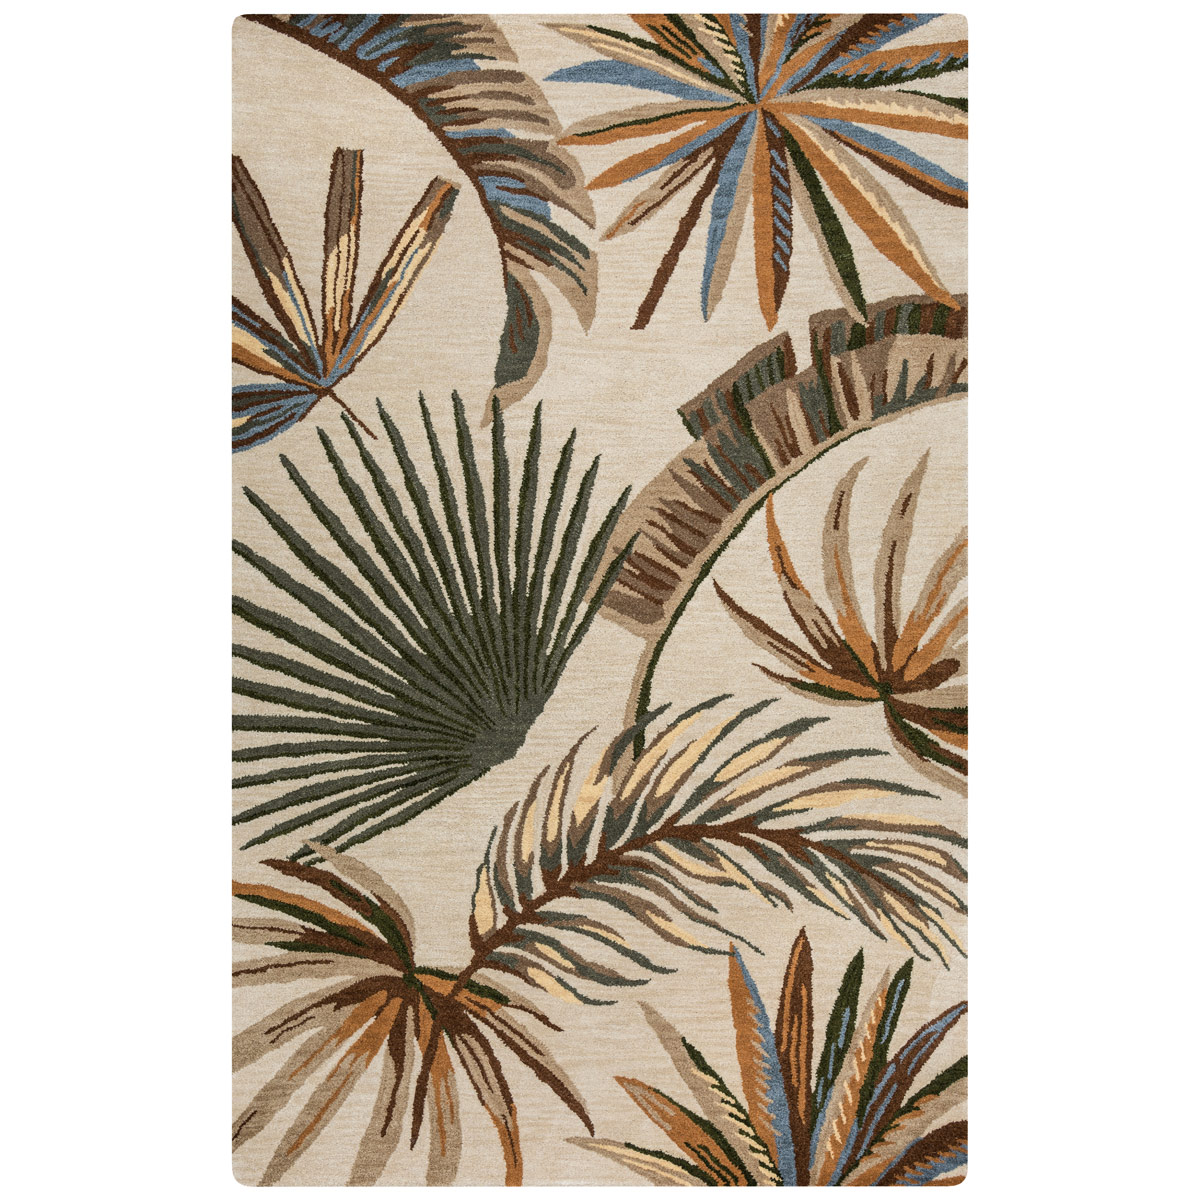 Cabot Bay Fronds Rug - 2 x 8